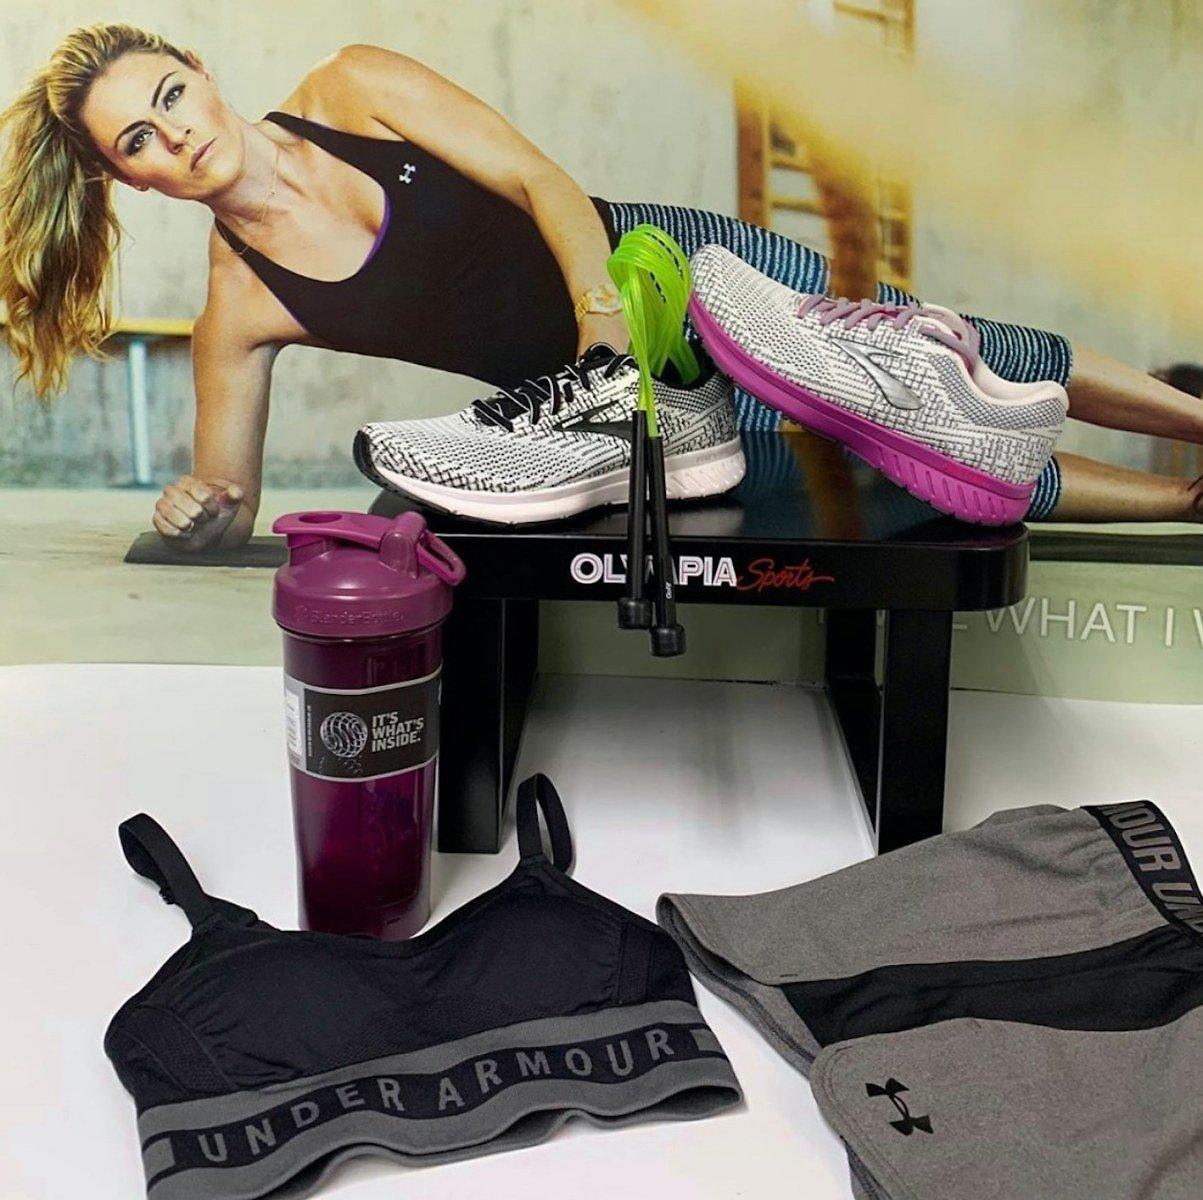 Save Up To 80% Off At Olympia Sports Clearance Event!